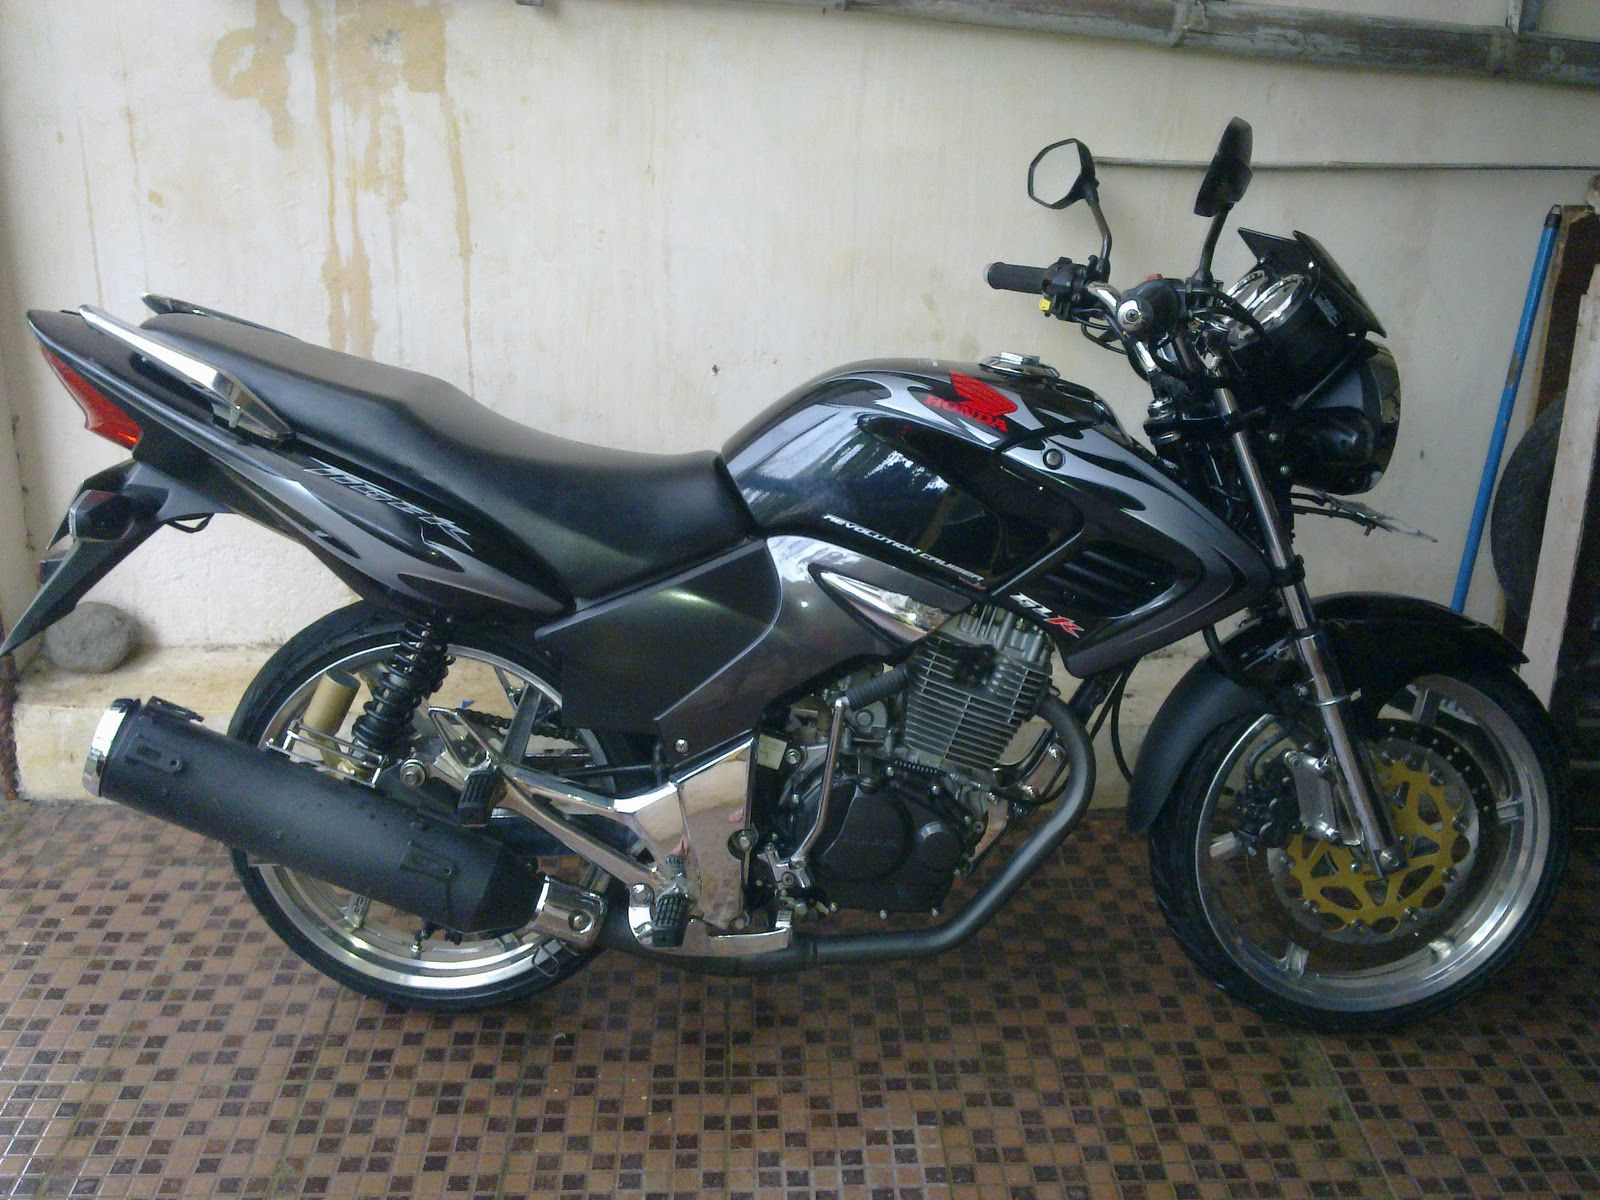 Modifikasi Motor Honda Tiger 2008 Revo Velg 17 Modifikasi Motor